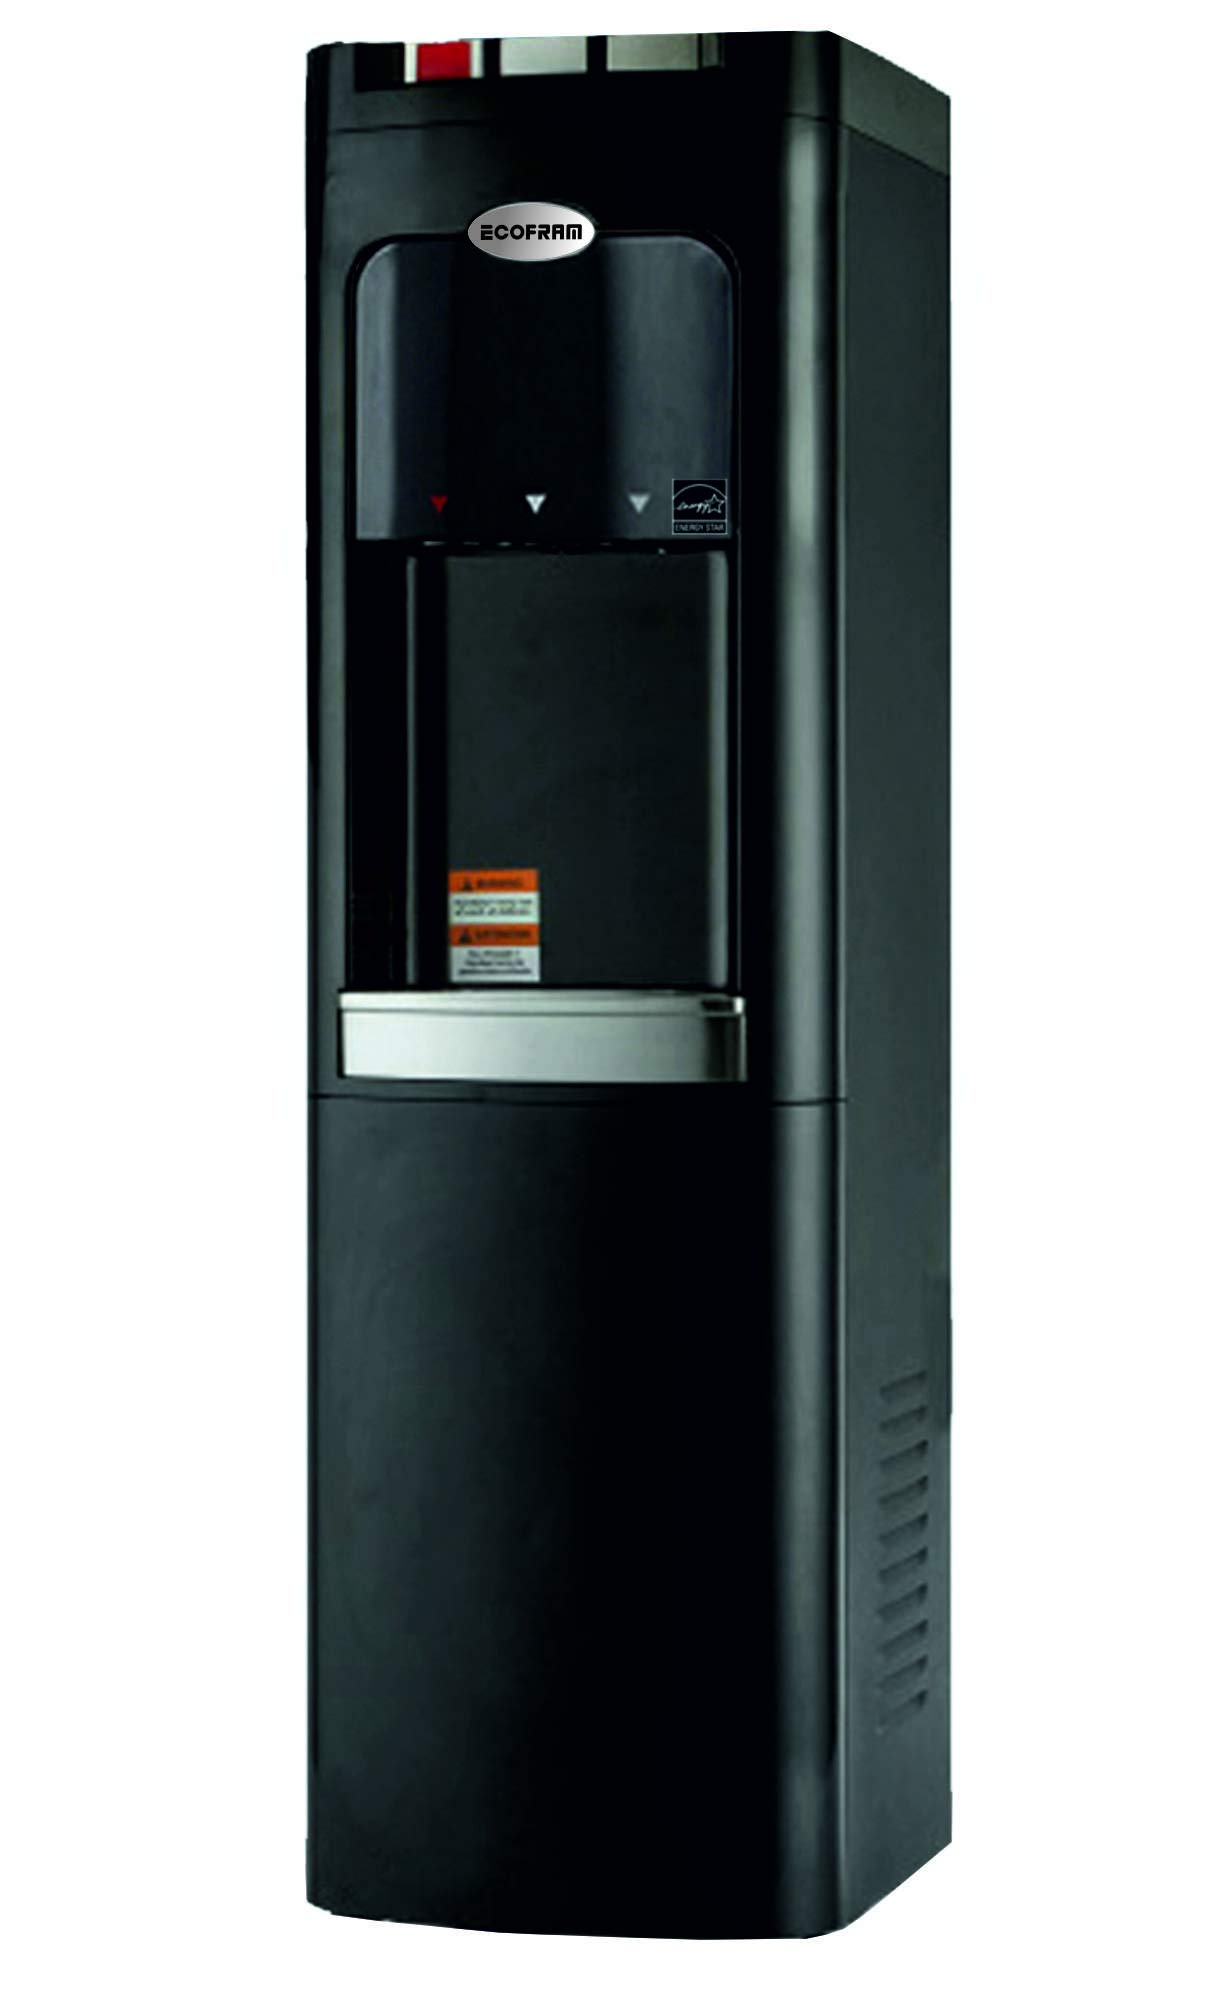 ECOFRAM Water Cooler, Premium Design, Commercial Series, Heavy Duty Built, Tall Top Loading Hot, Cook and Cold Water Dispenser